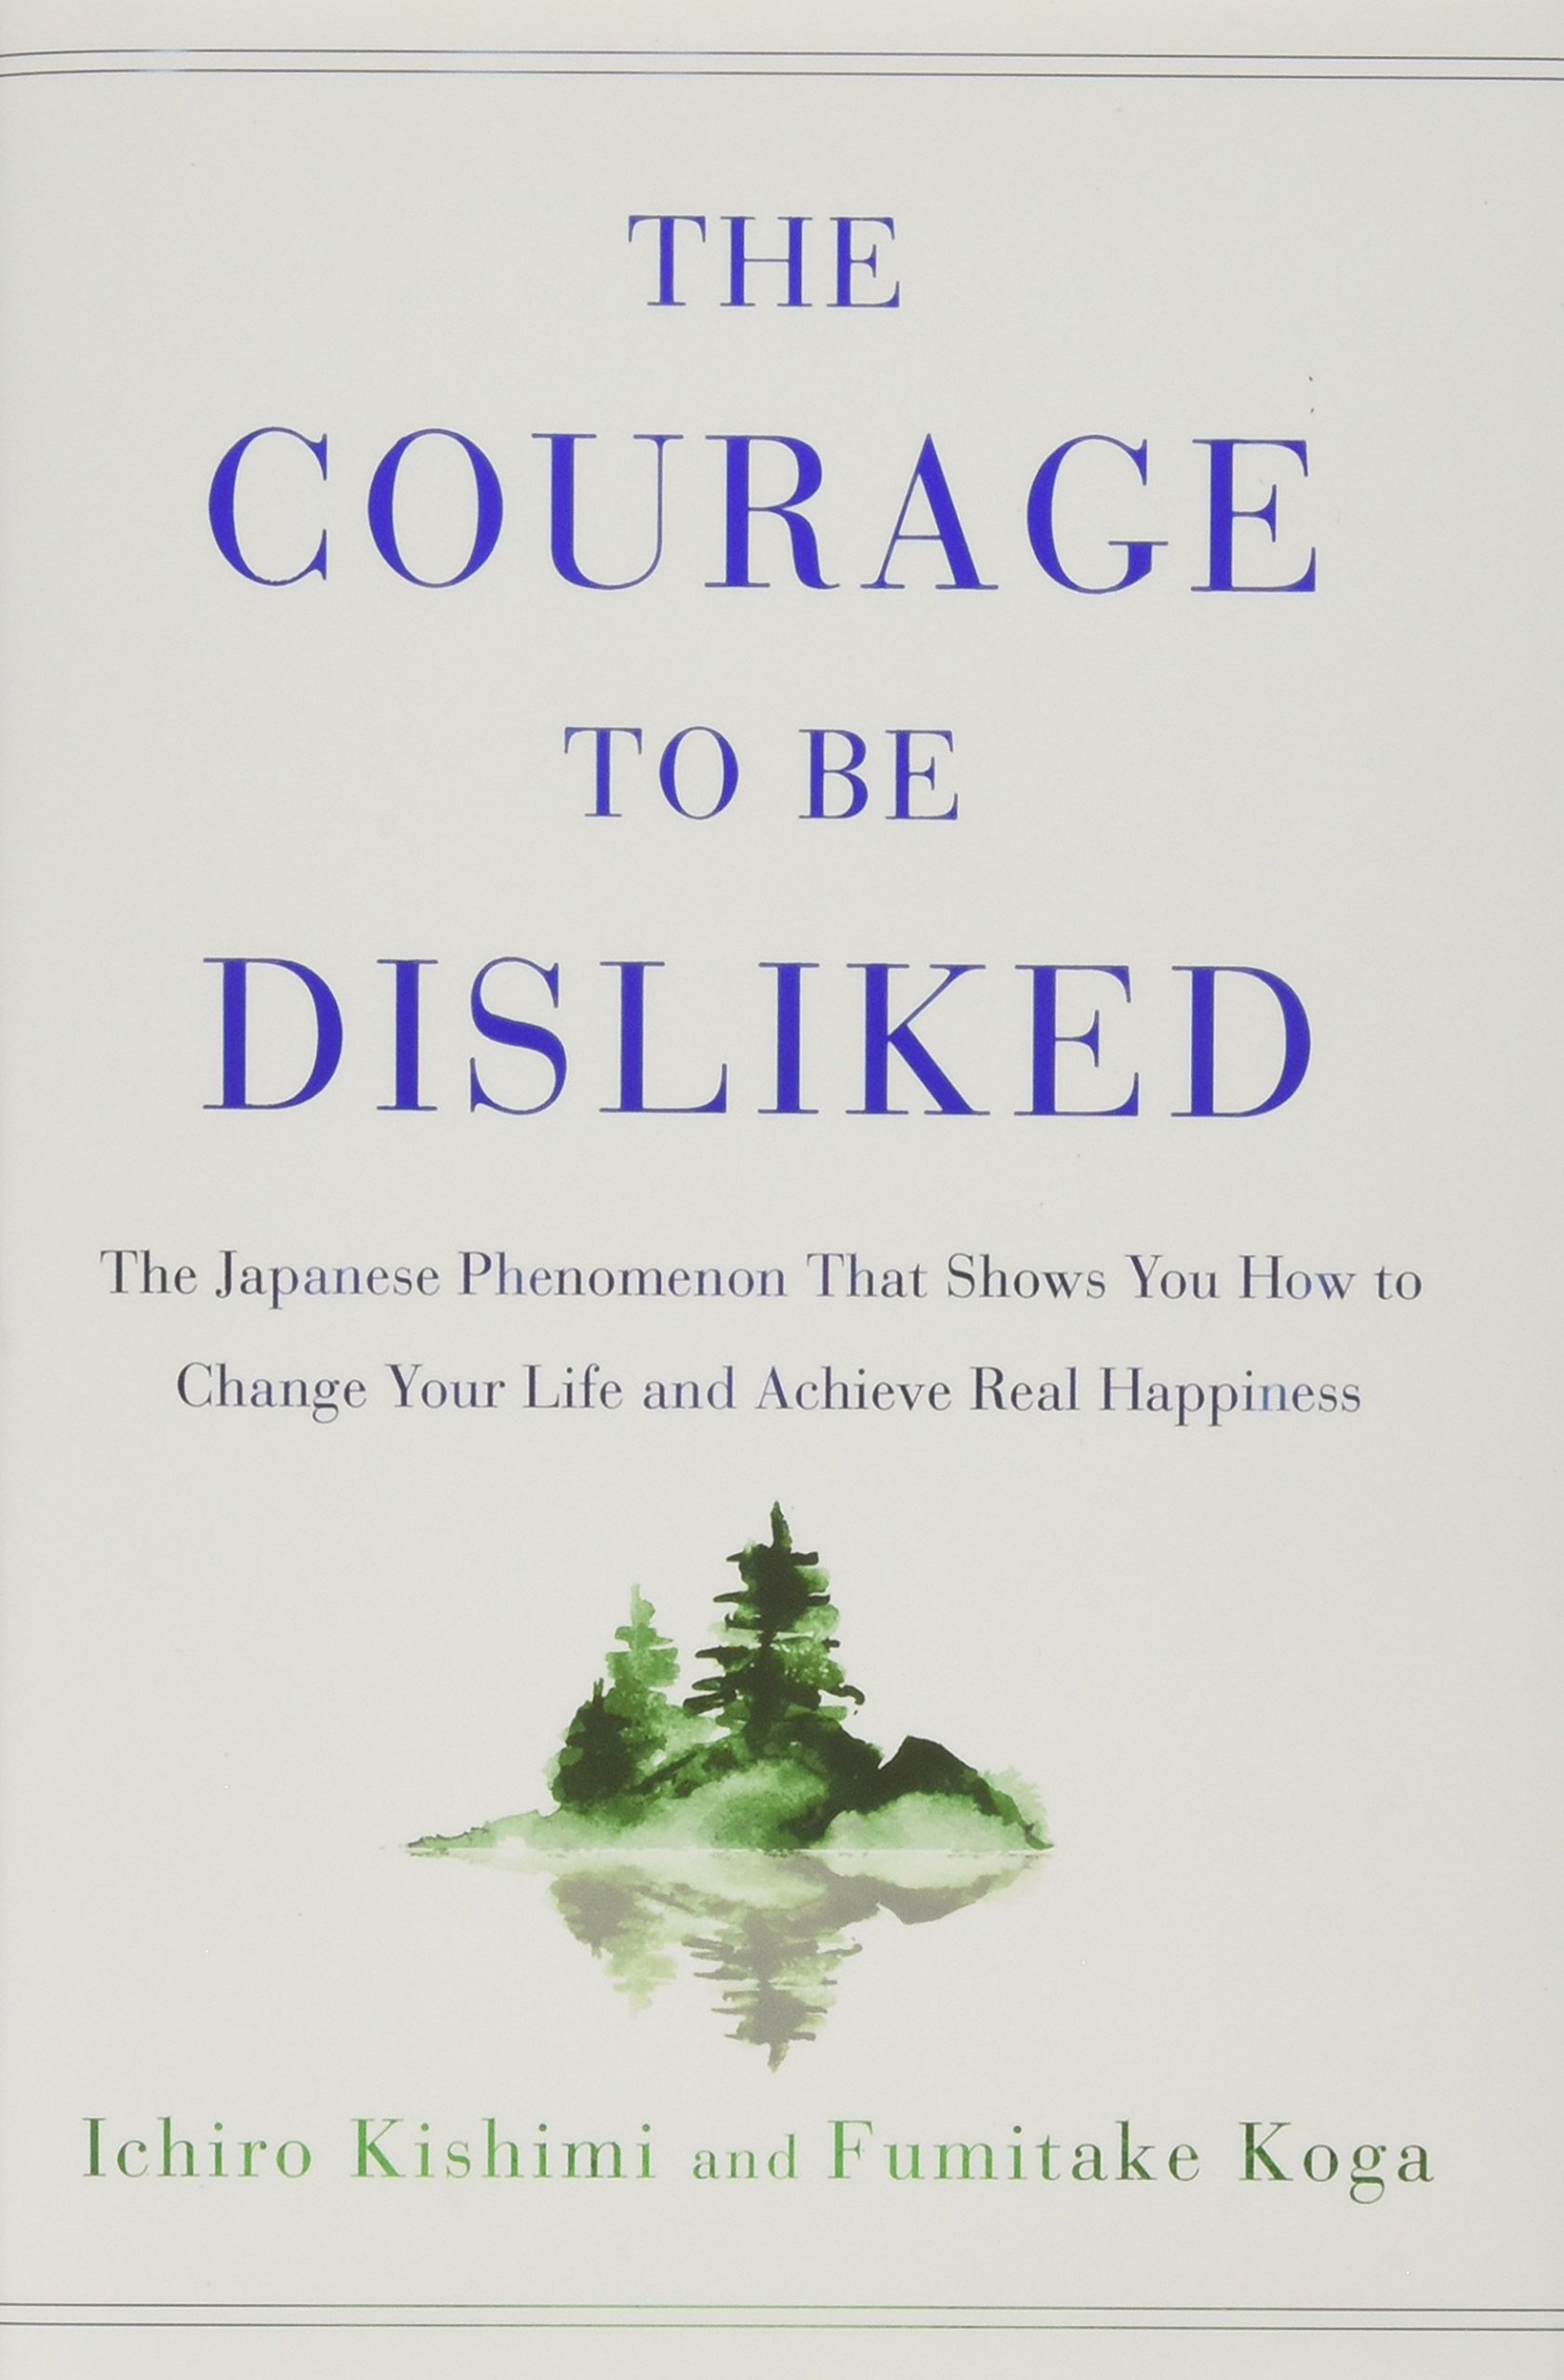 The Courage to Be Disliked: The Japanese Phenomenon That Shows You How to Change Your Life and Achieve Real Happiness